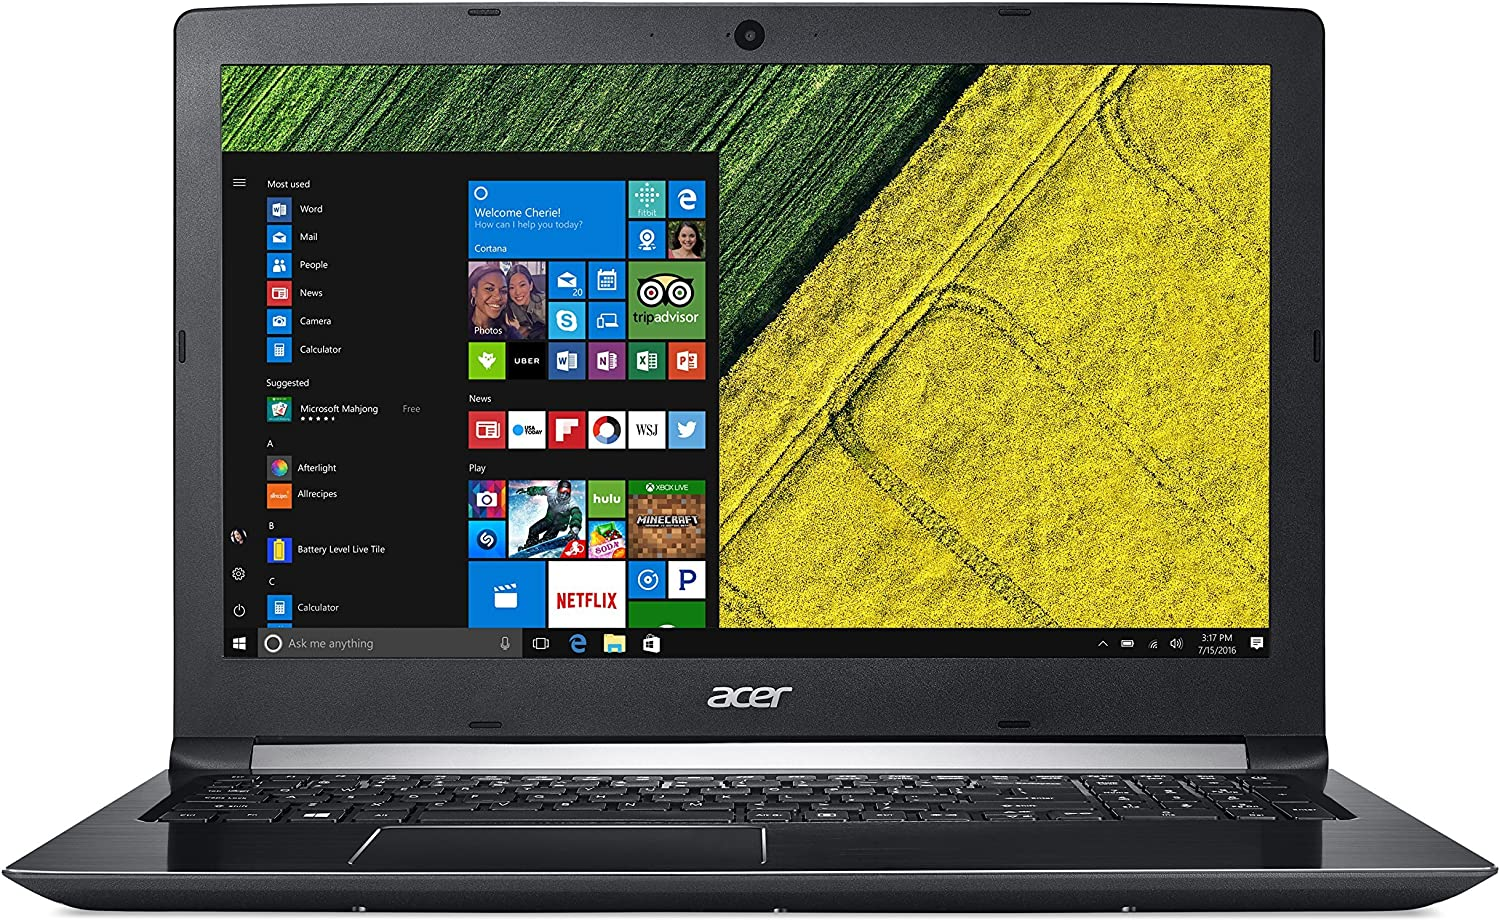 Acer Aspire 5, 15.6in Full HD 1080p, 7th Gen Intel Core i7-7500U, 8GB DDR4, 1TB HDD, Windows 10 Home, A515-51-75 (Renewed)